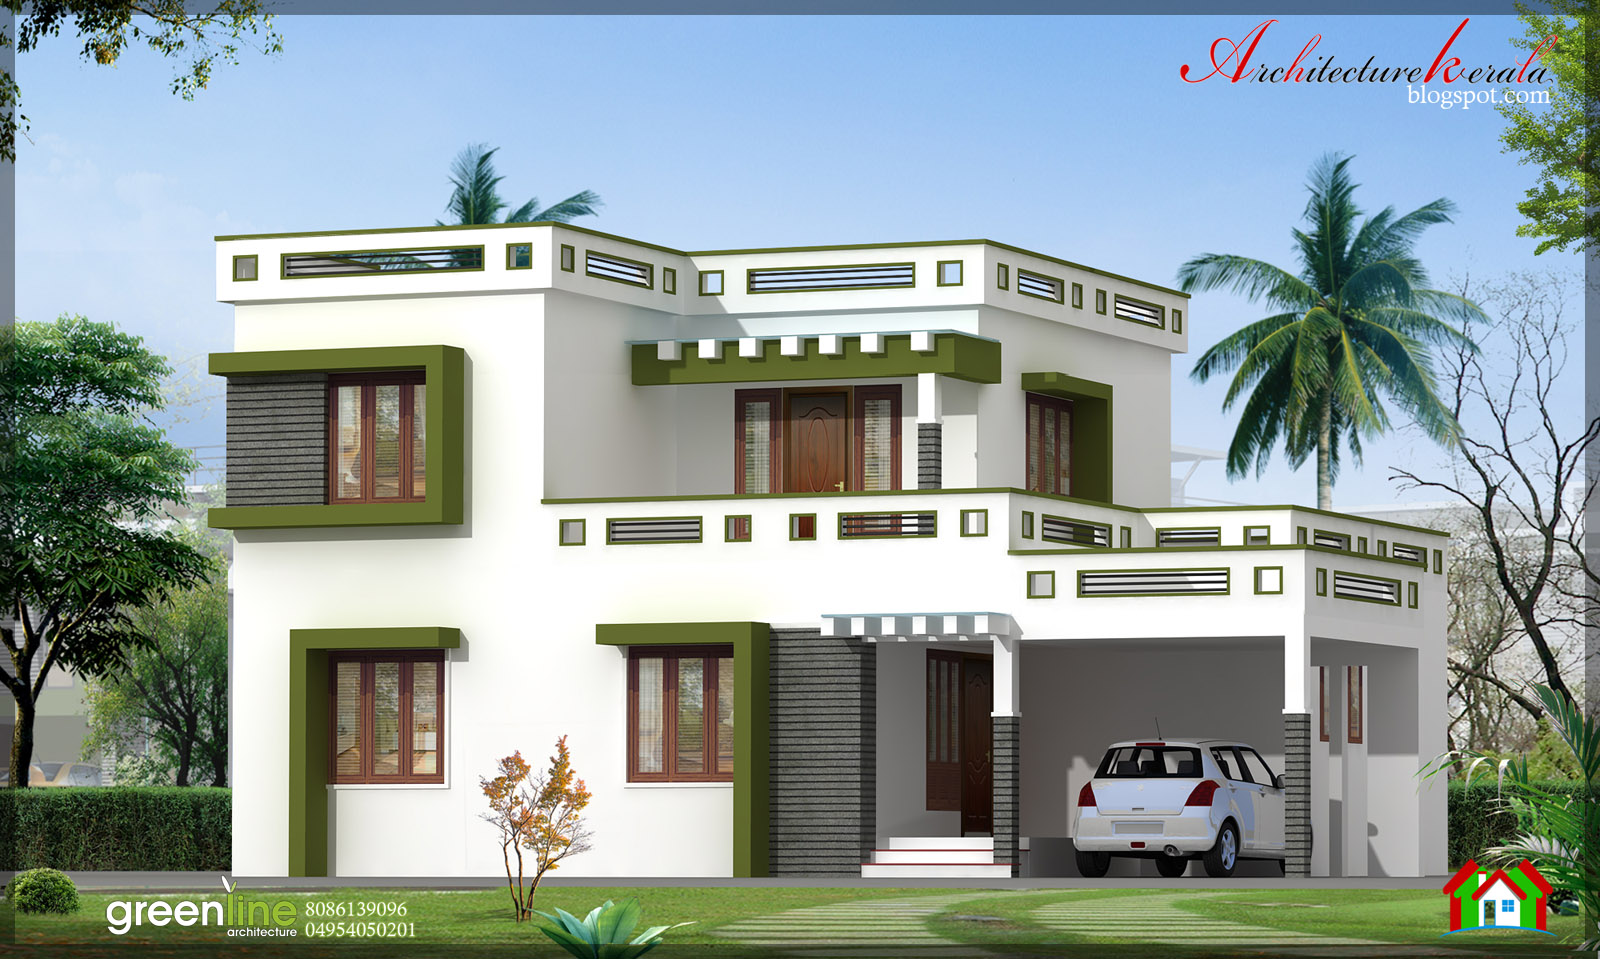 ... Kerala: 3 BHK NEW MODERN STYLE KERALA HOME DESIGN IN 1700 SQ FT